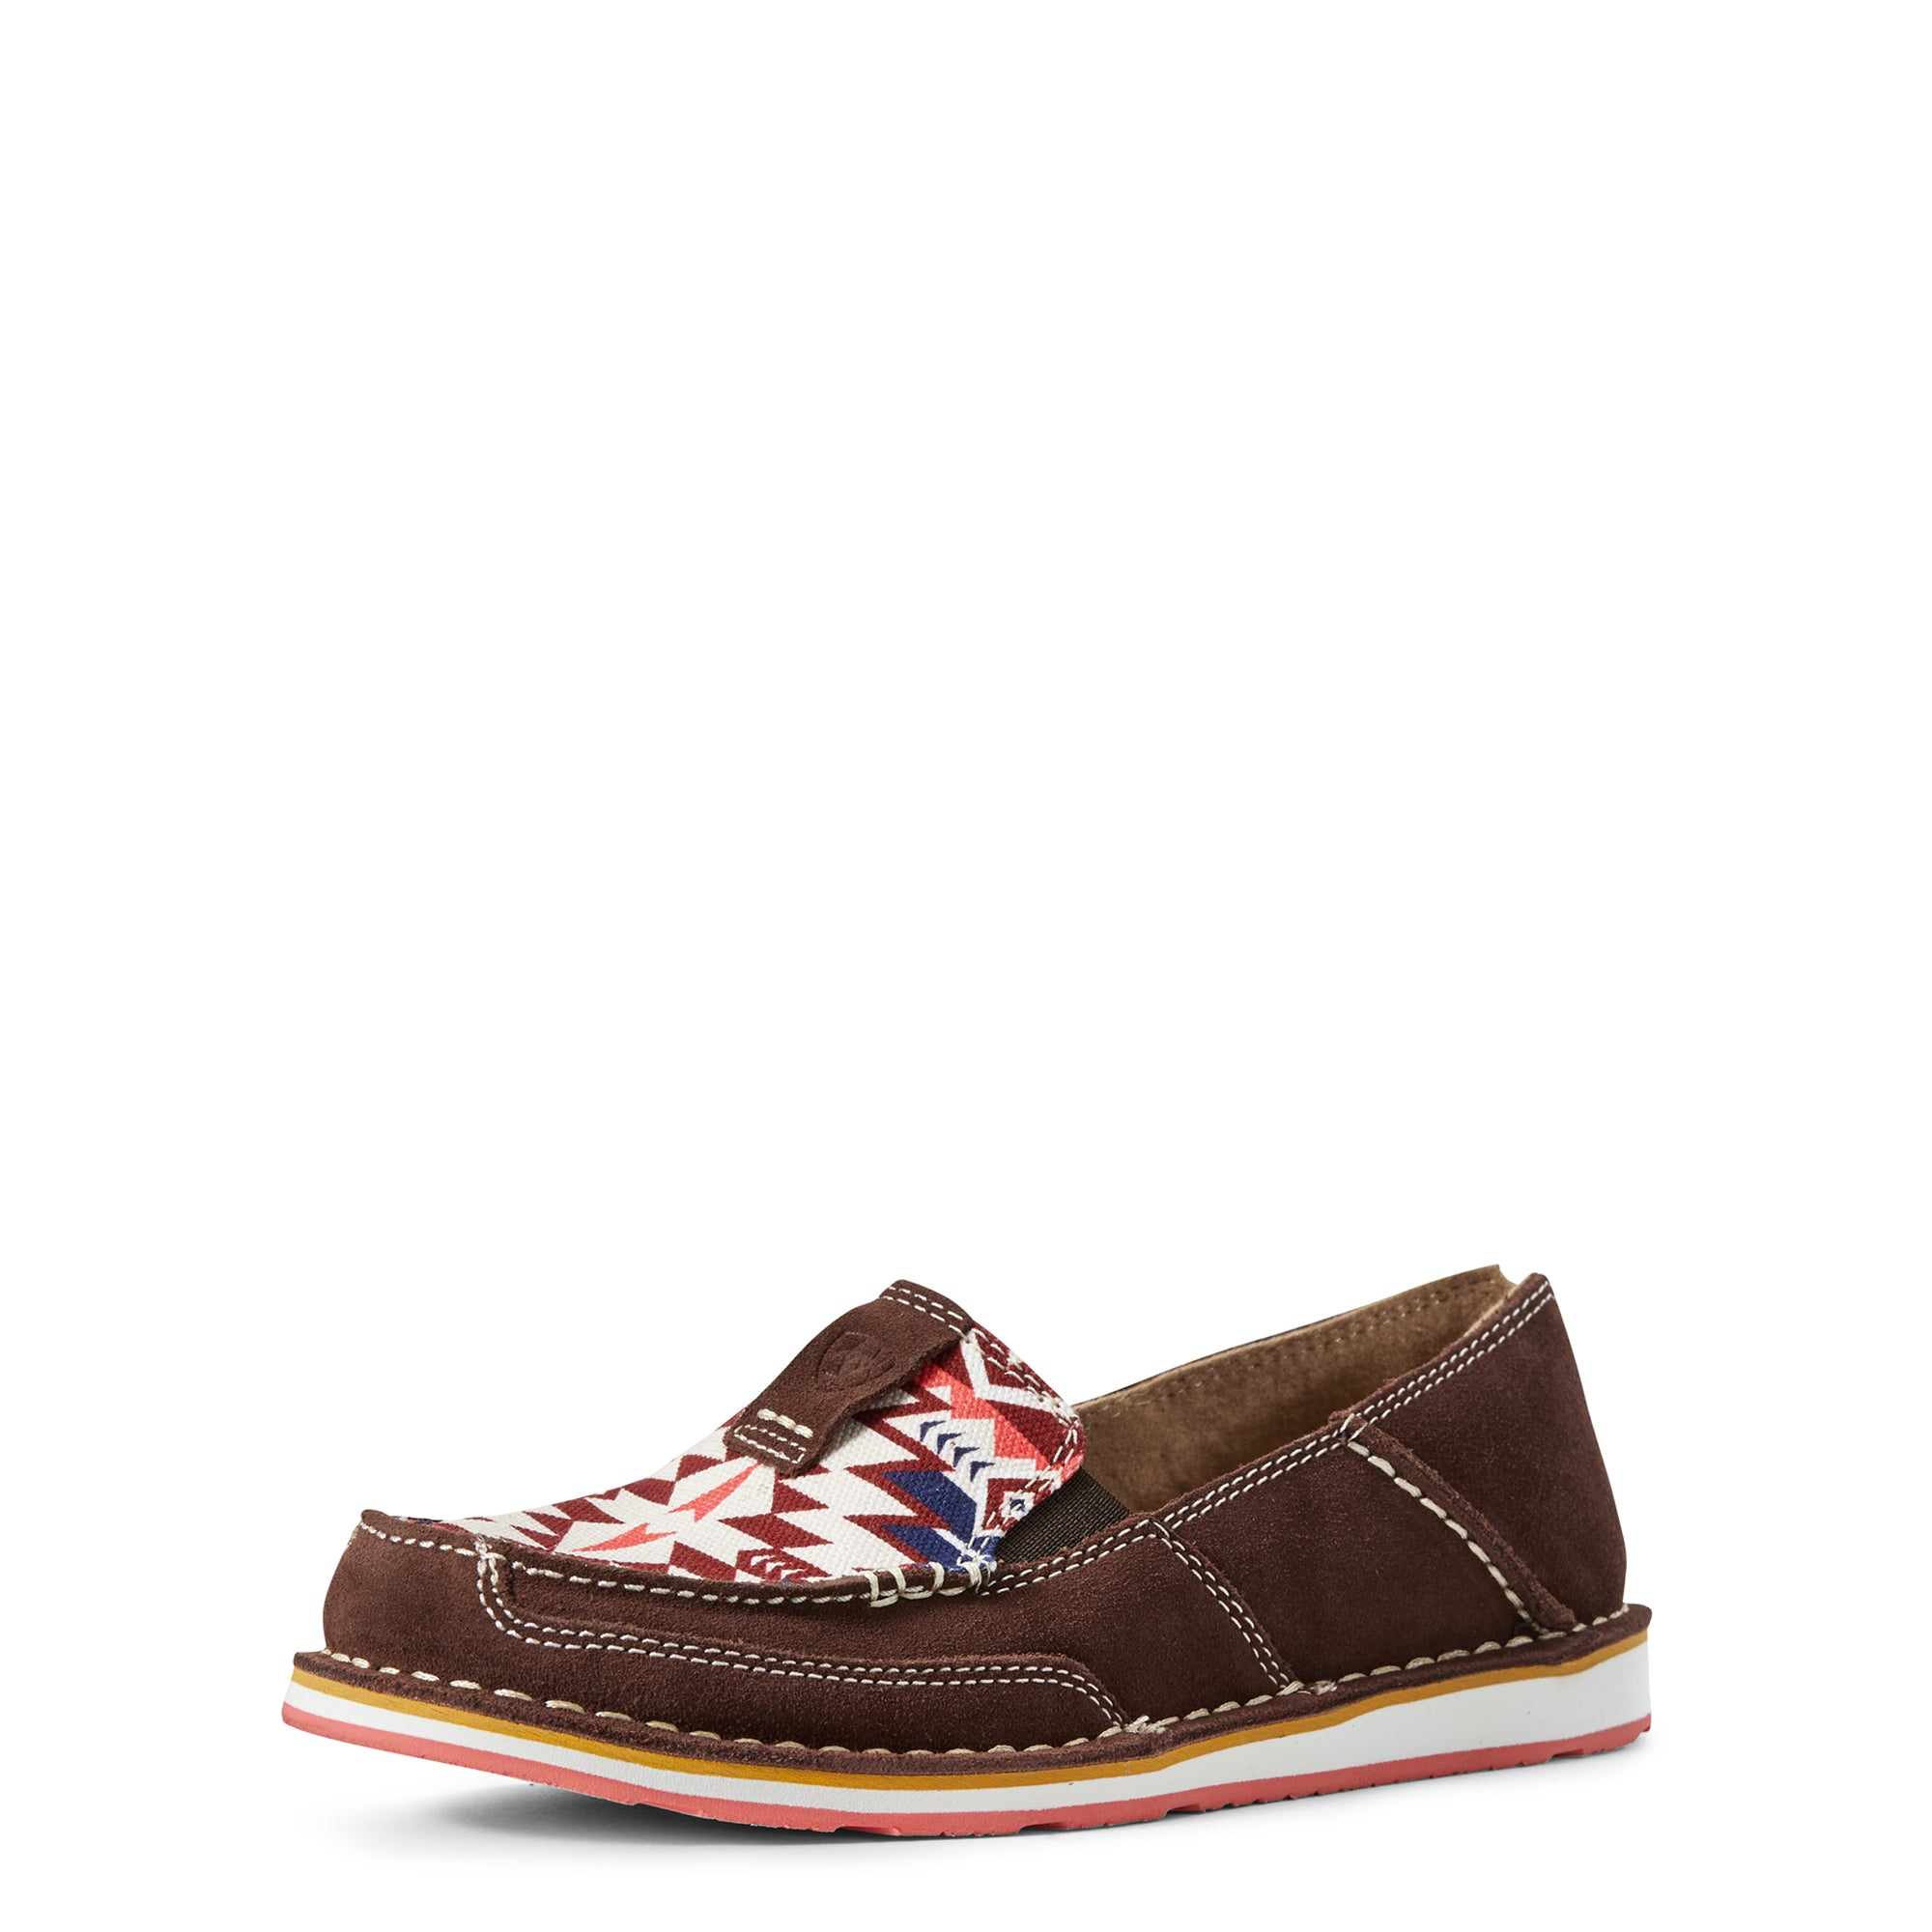 'Ariat' 10029746 - Women's Cruiser Aztec Slip On - Brown / Burgundy